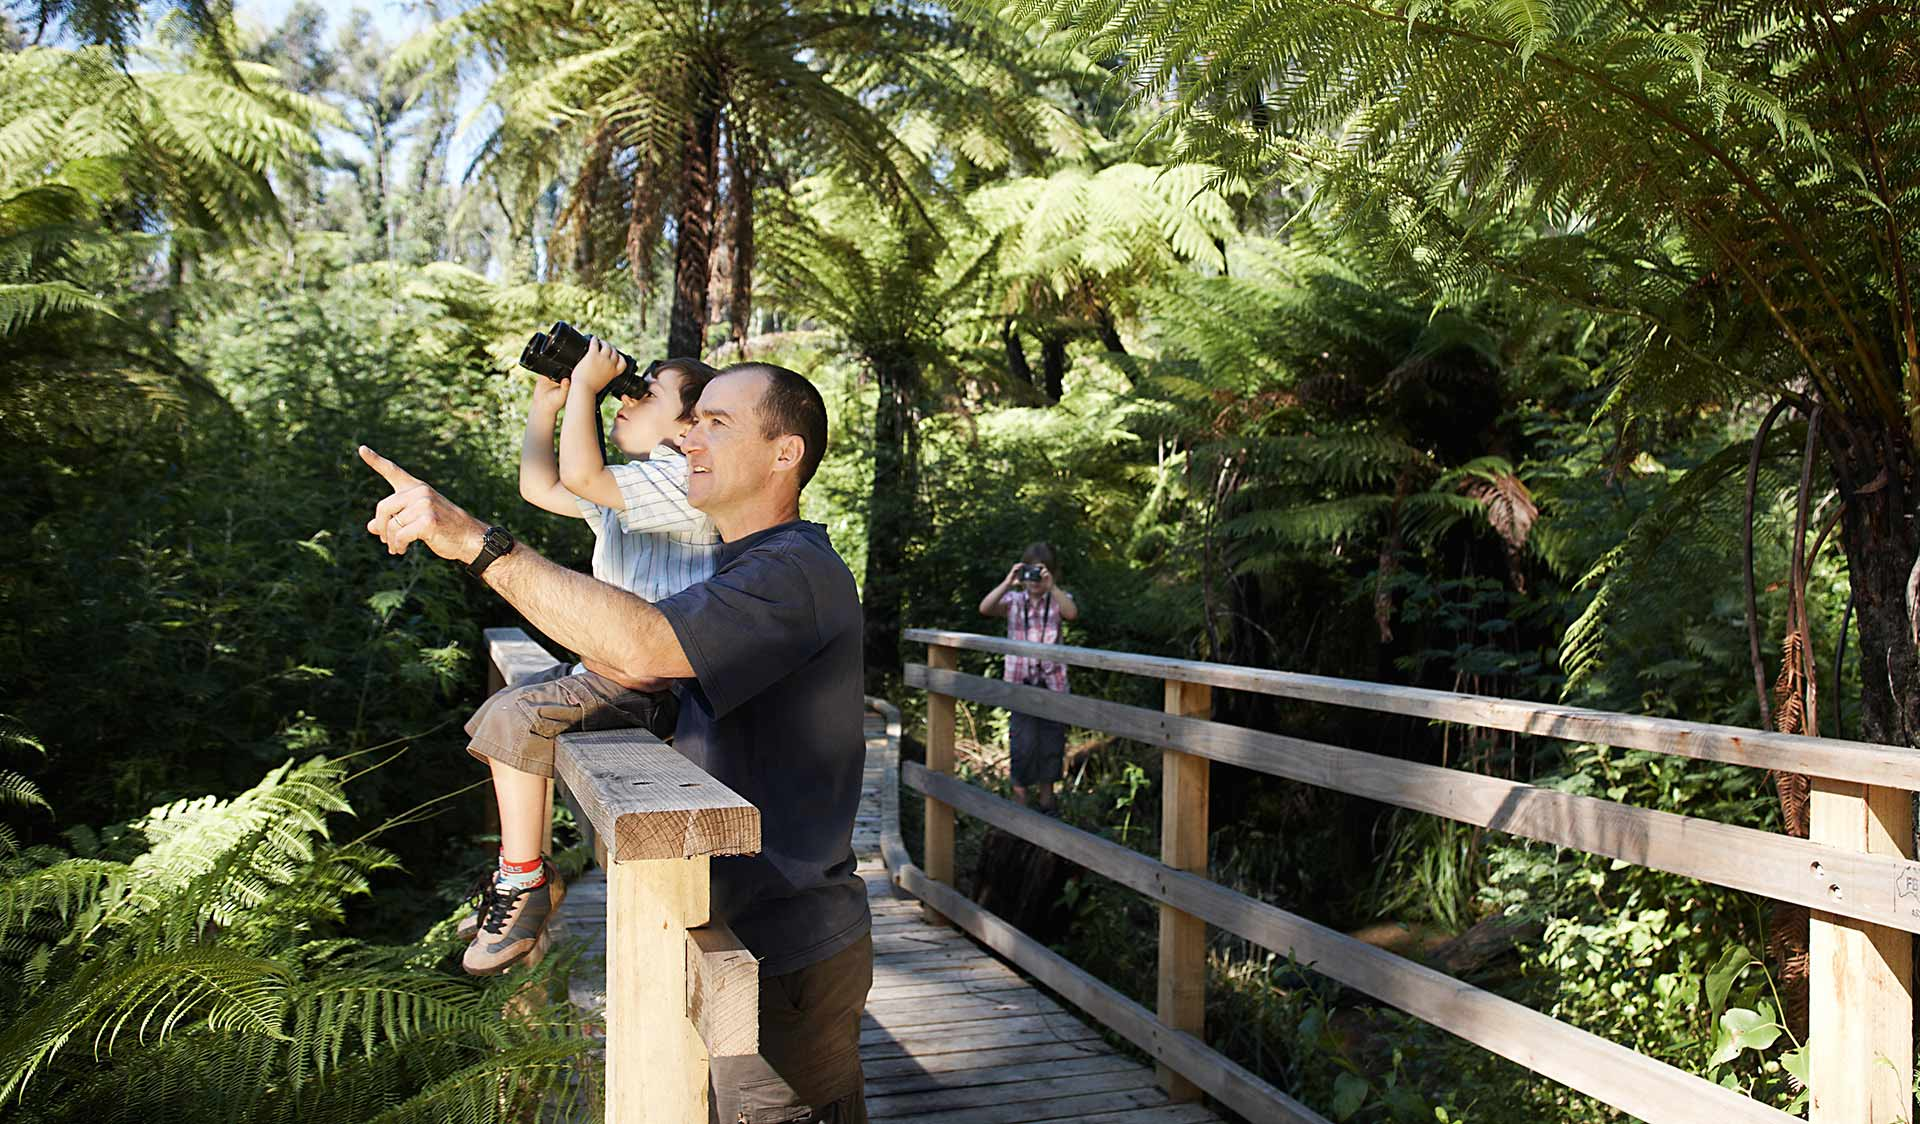 Father and son bird watching on boardwalk